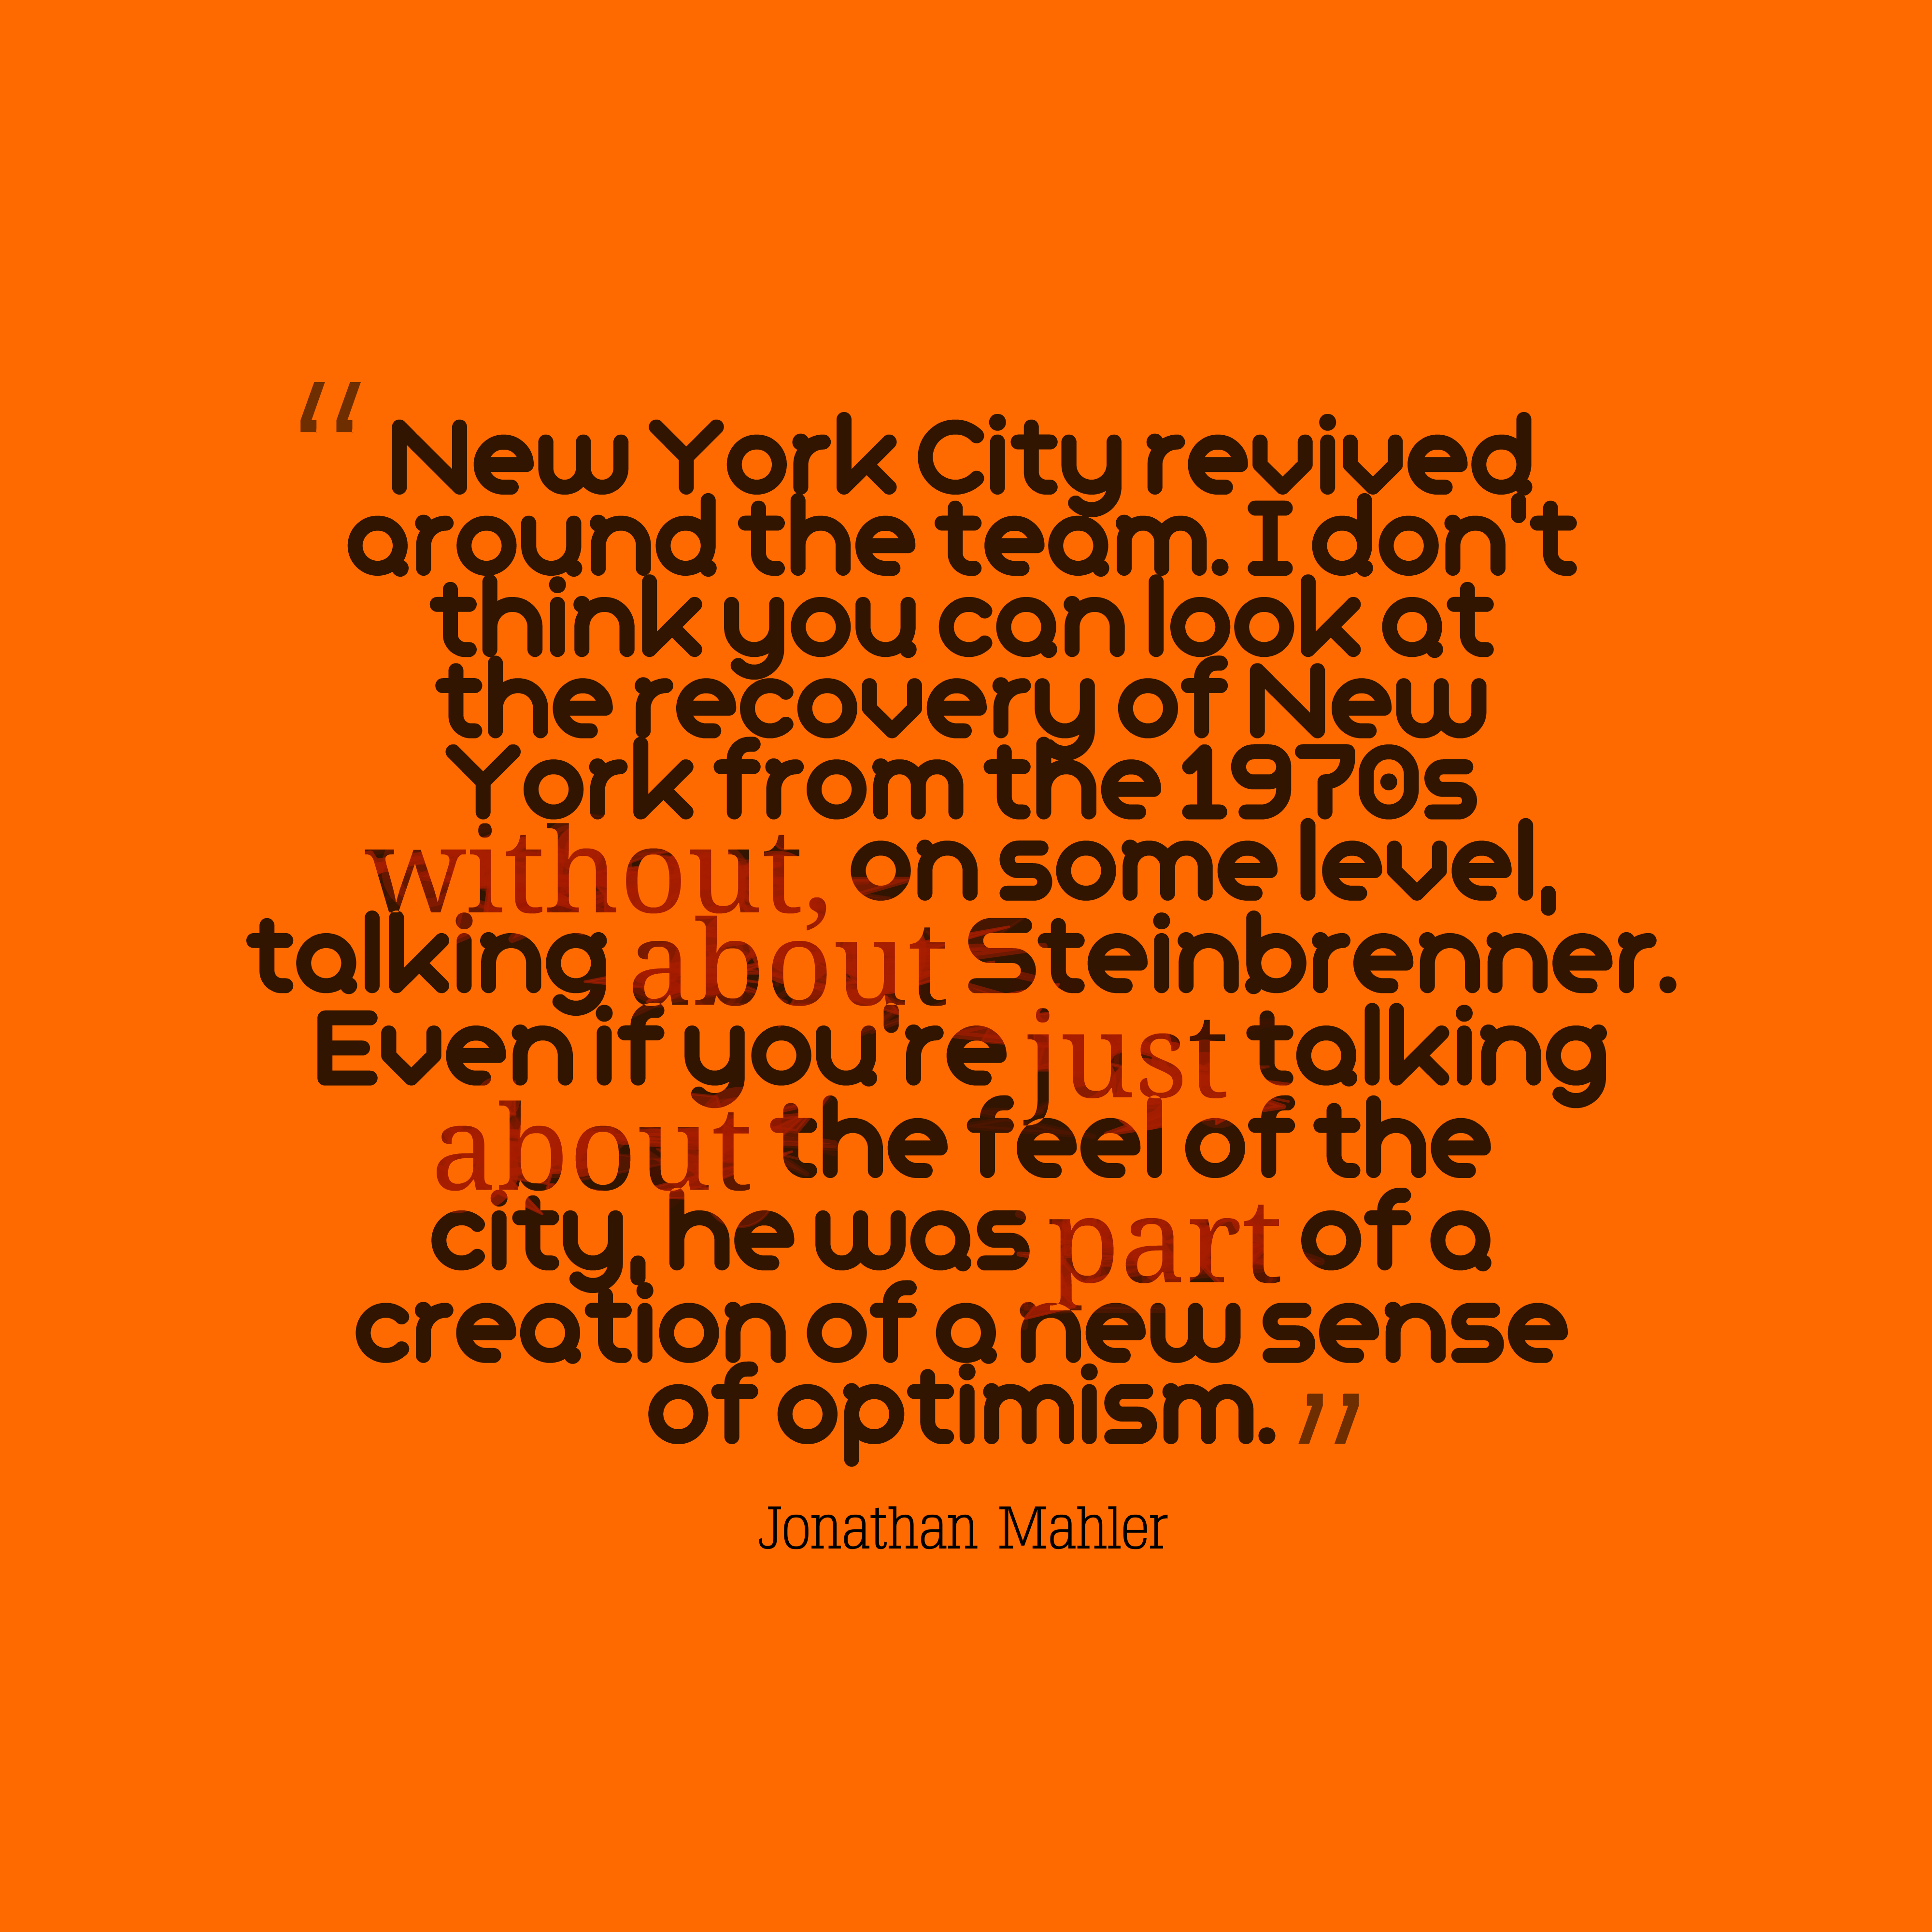 Quotes image of New York City revived around the team. I don't think you can look at the recovery of New York from the 1970s without, on some level, talking about Steinbrenner. Even if you're just talking about the feel of the city, he was part of a creation of a new sense of optimism.